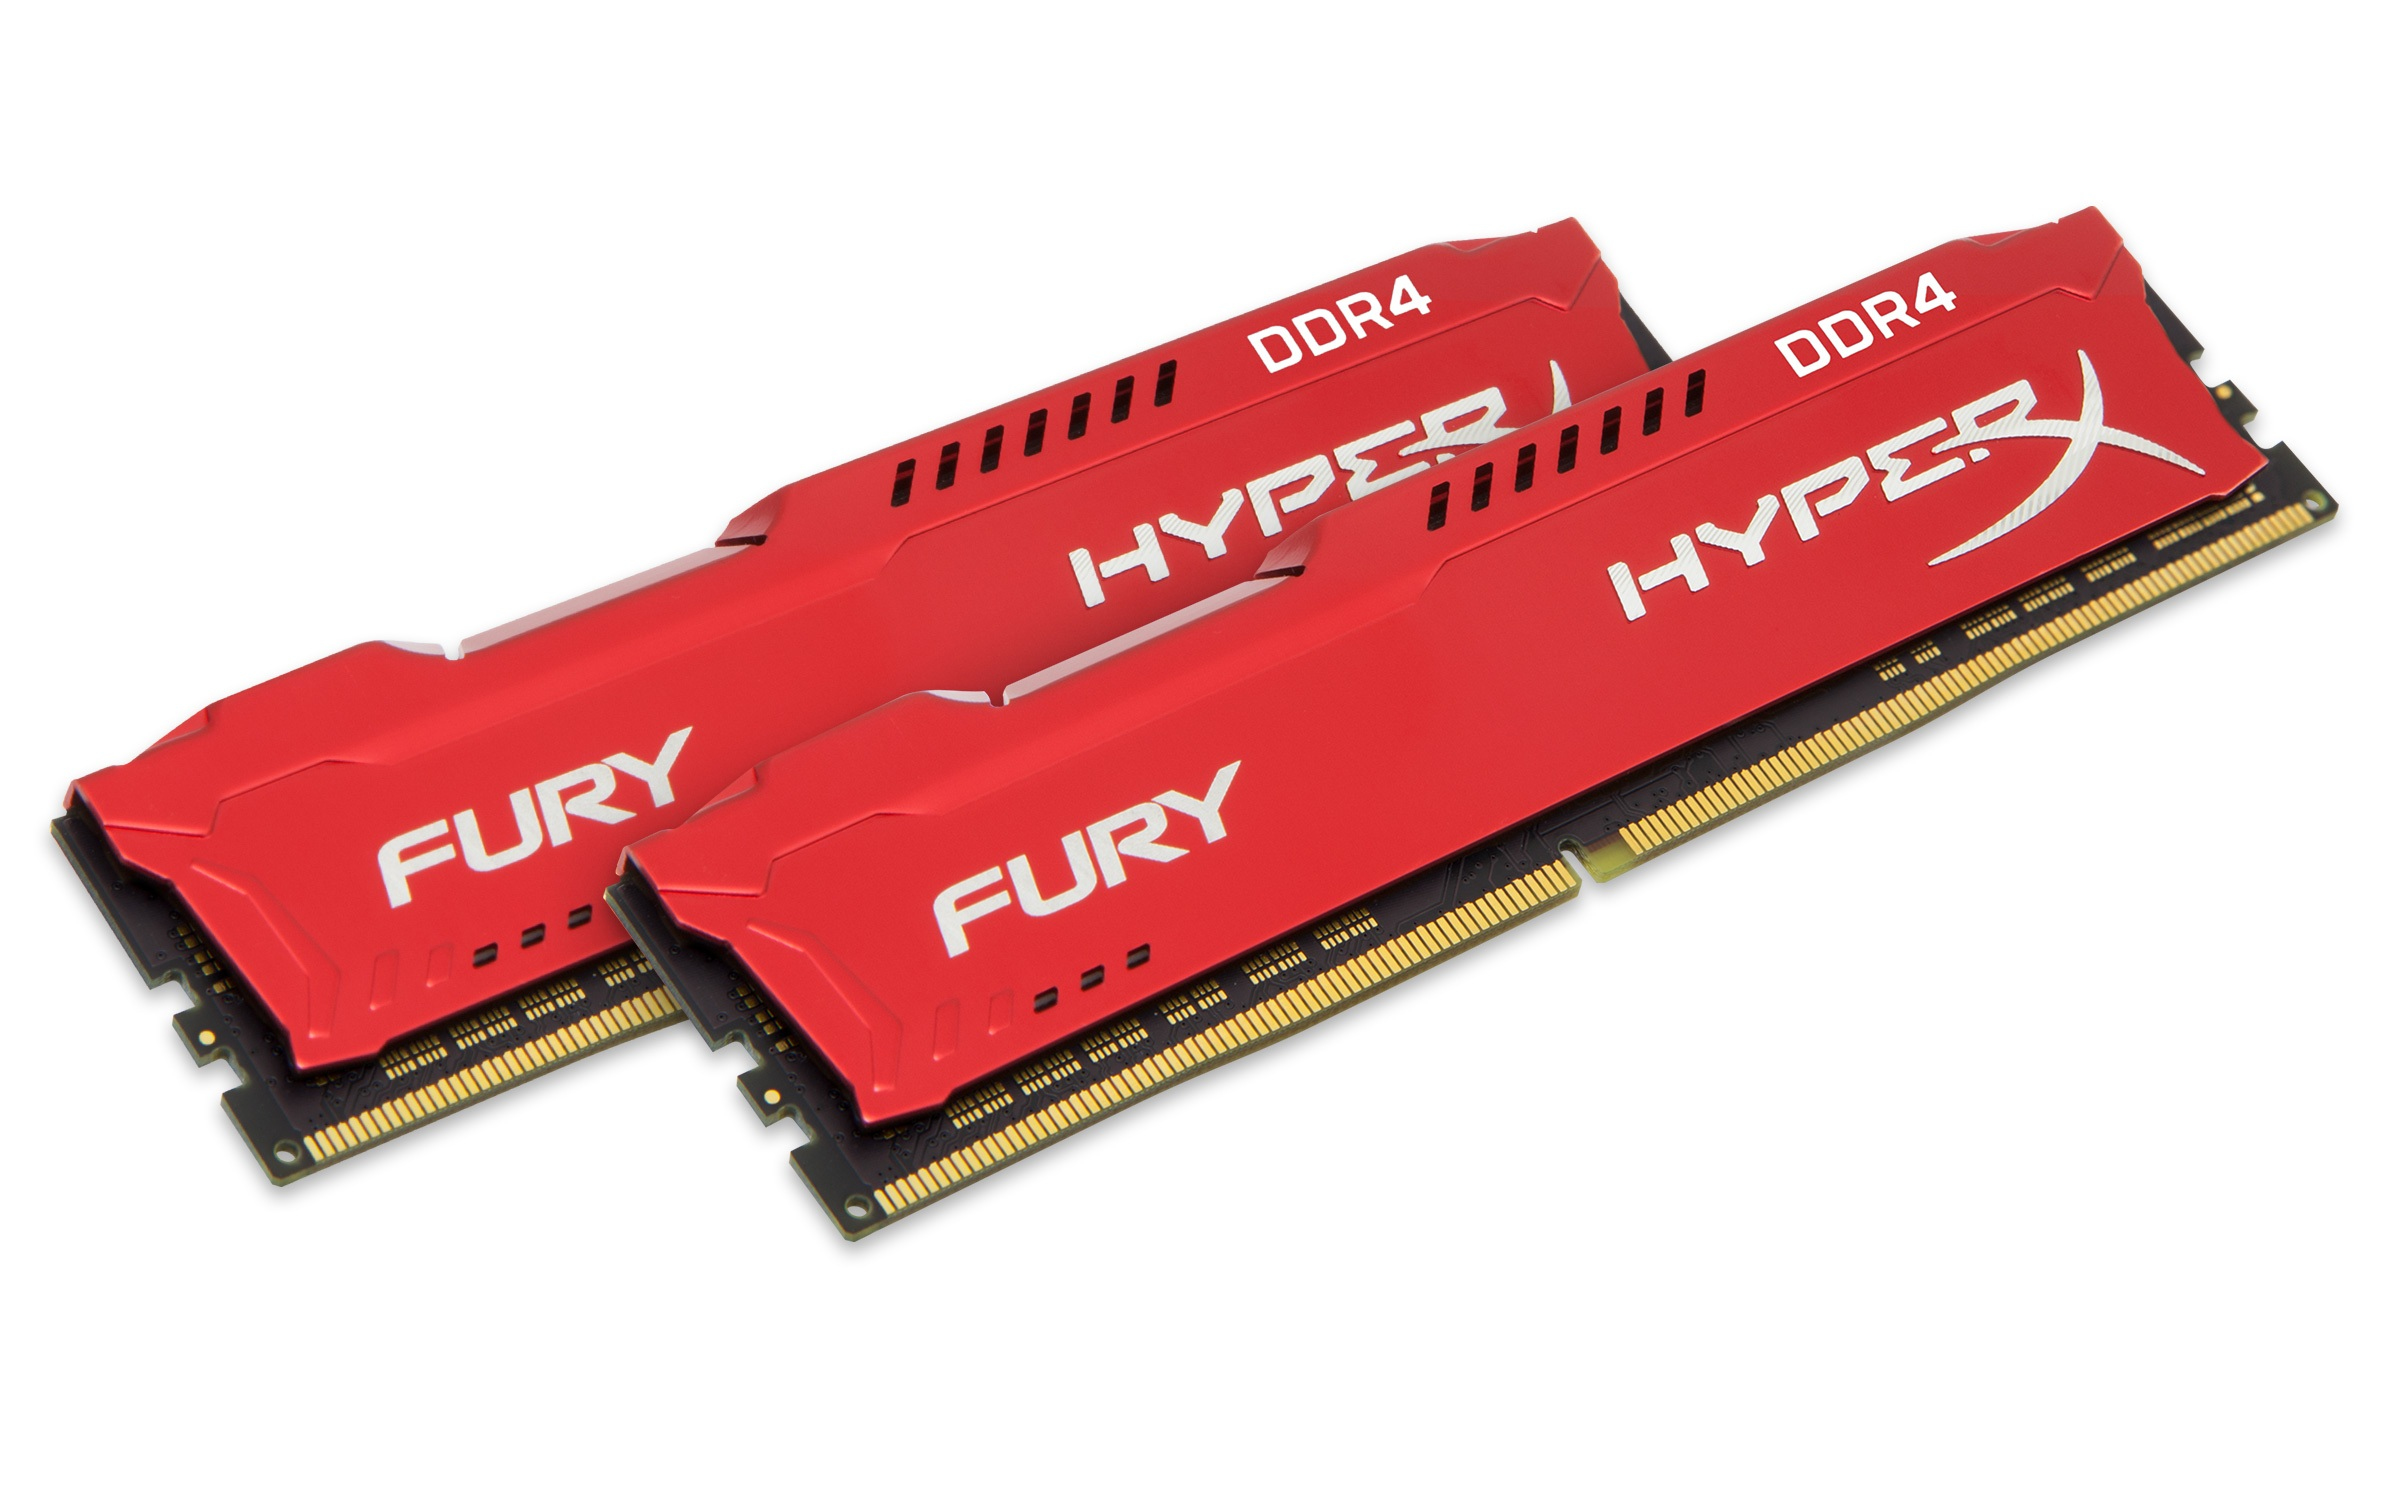 Kingston HyperX FURY Red 16GB DDR4 2400MHz 2x8GB